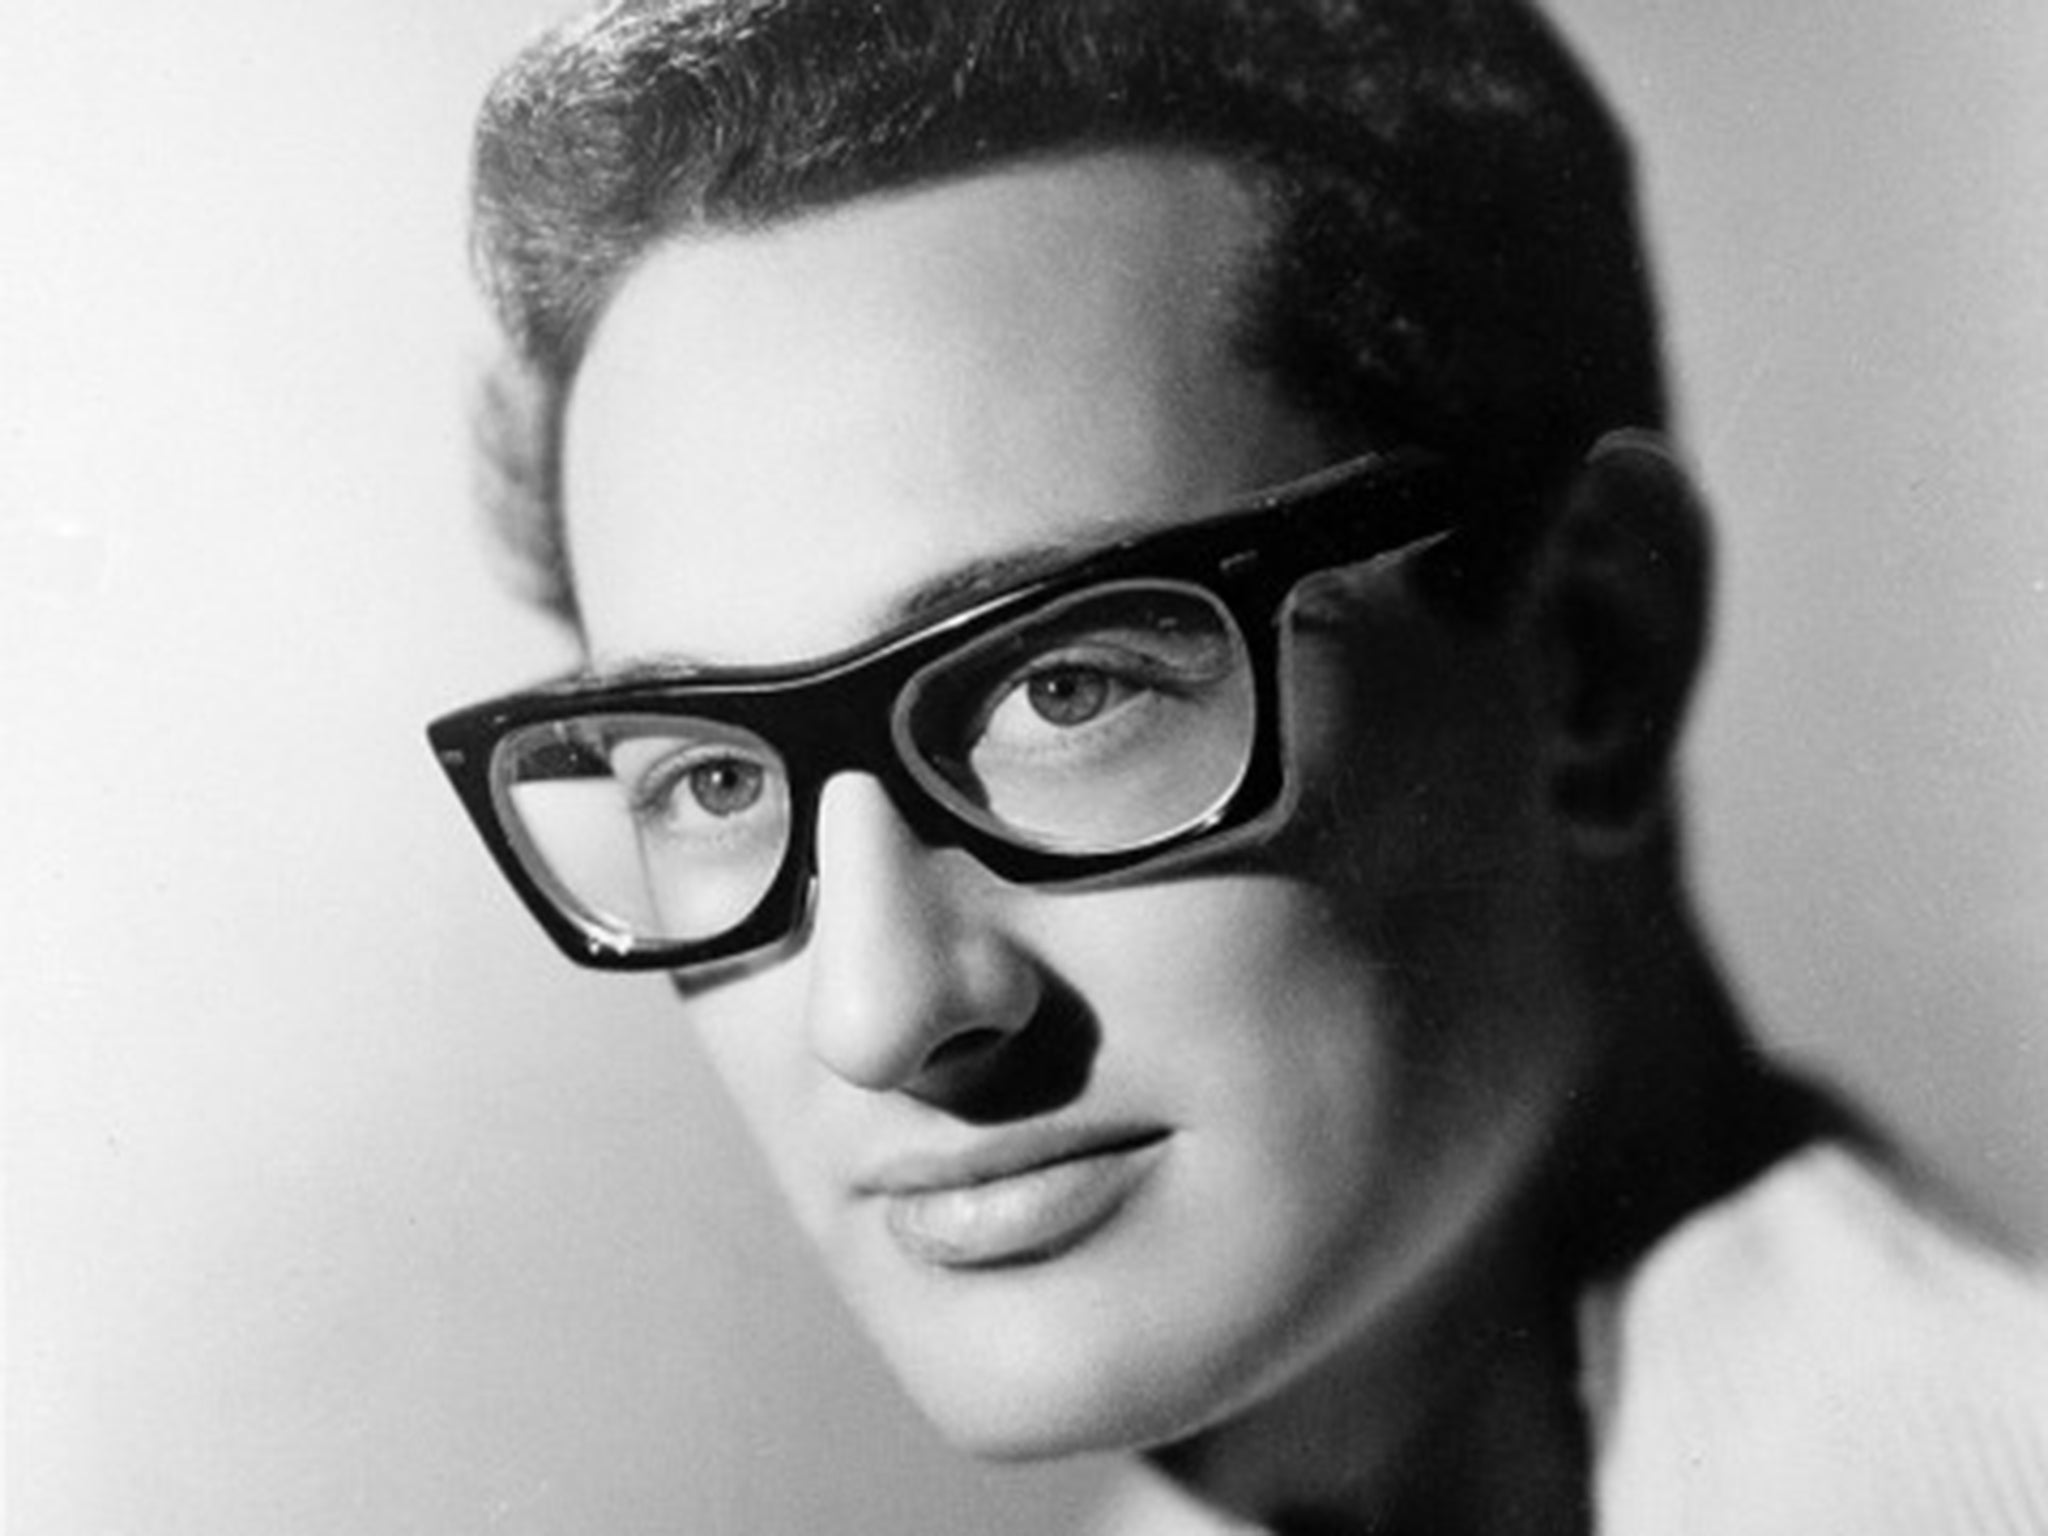 da75f4fa7a5c The Day the Music Died: 60 years since that fateful plane crash, Buddy  Holly's rock'n'roll legacy lives on